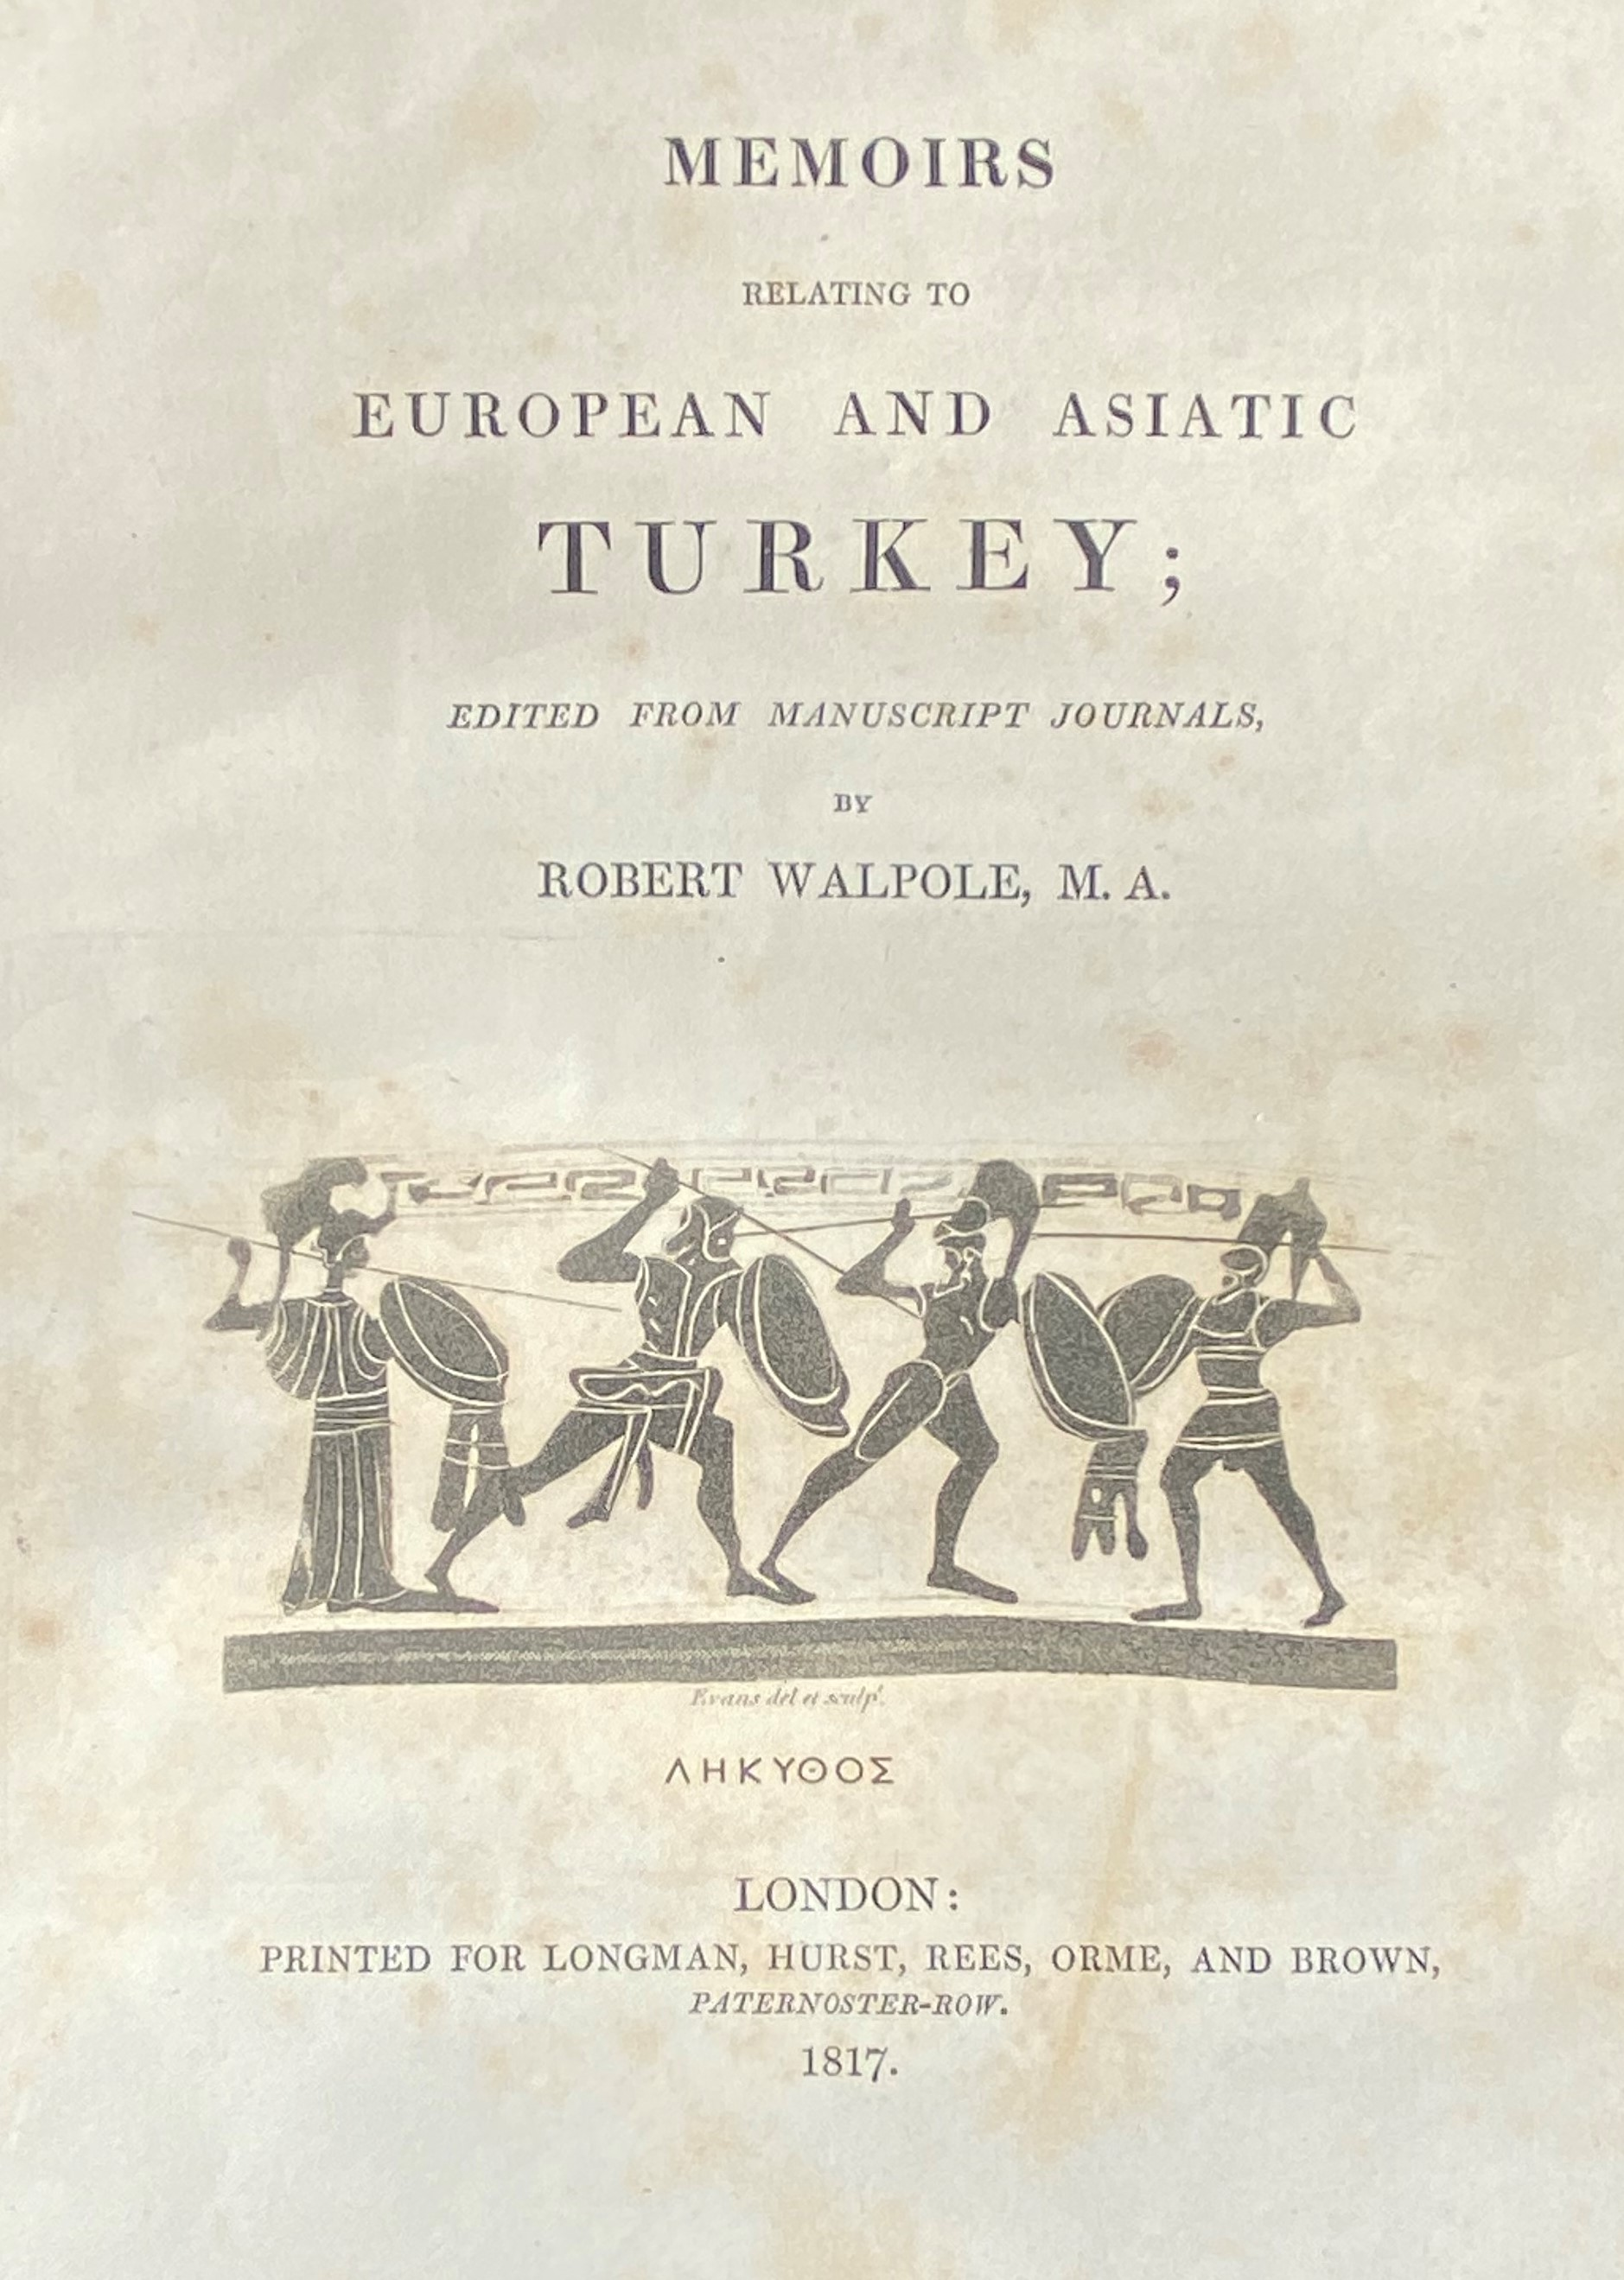 Walpole (Robert)ÿMemoirs Relating to European and Asiatic Turkey, lg. 4to Lond. 1817. Vignette - Image 3 of 4